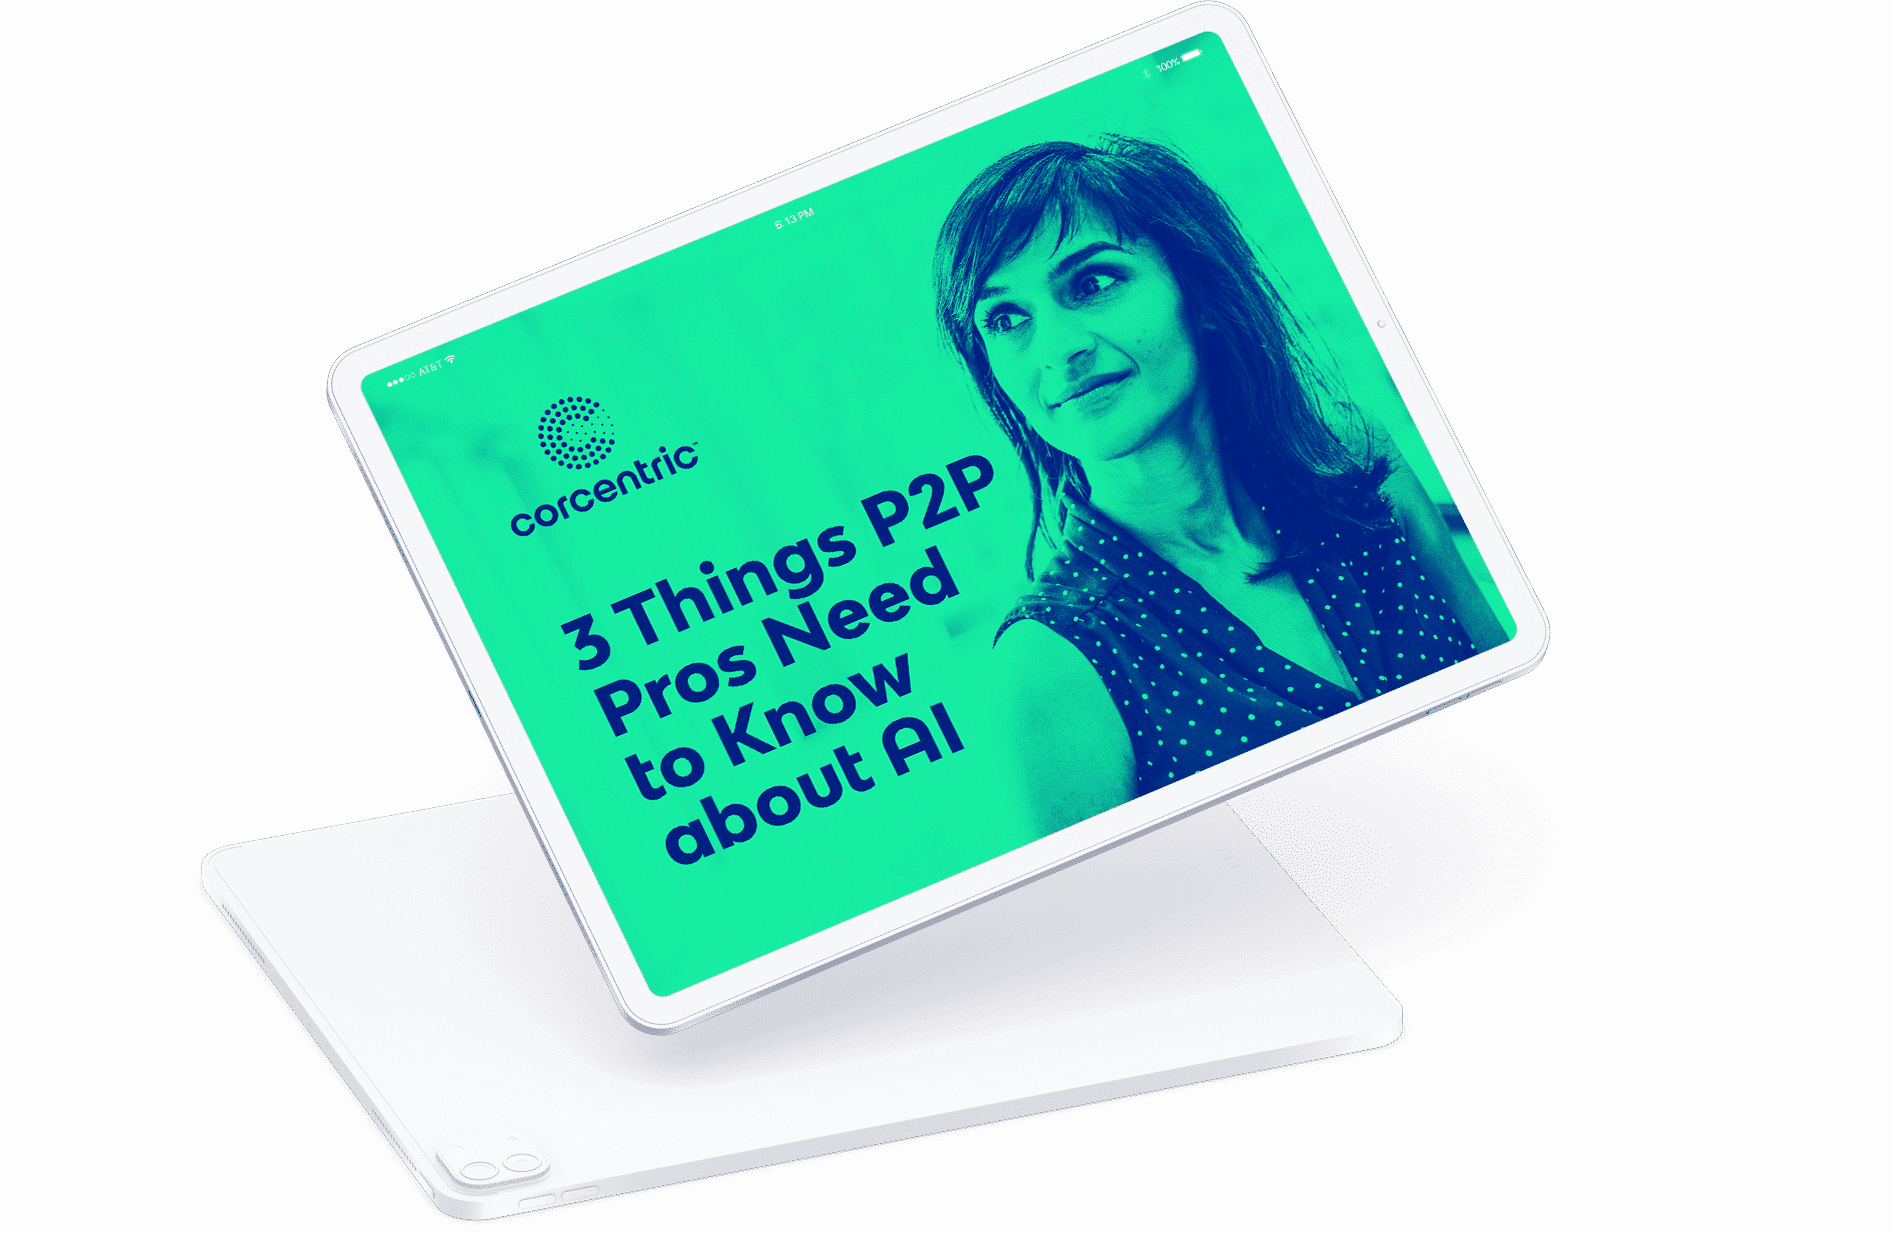 webinar-3-things-p2p-pros-need-to-know-about-ai-asset